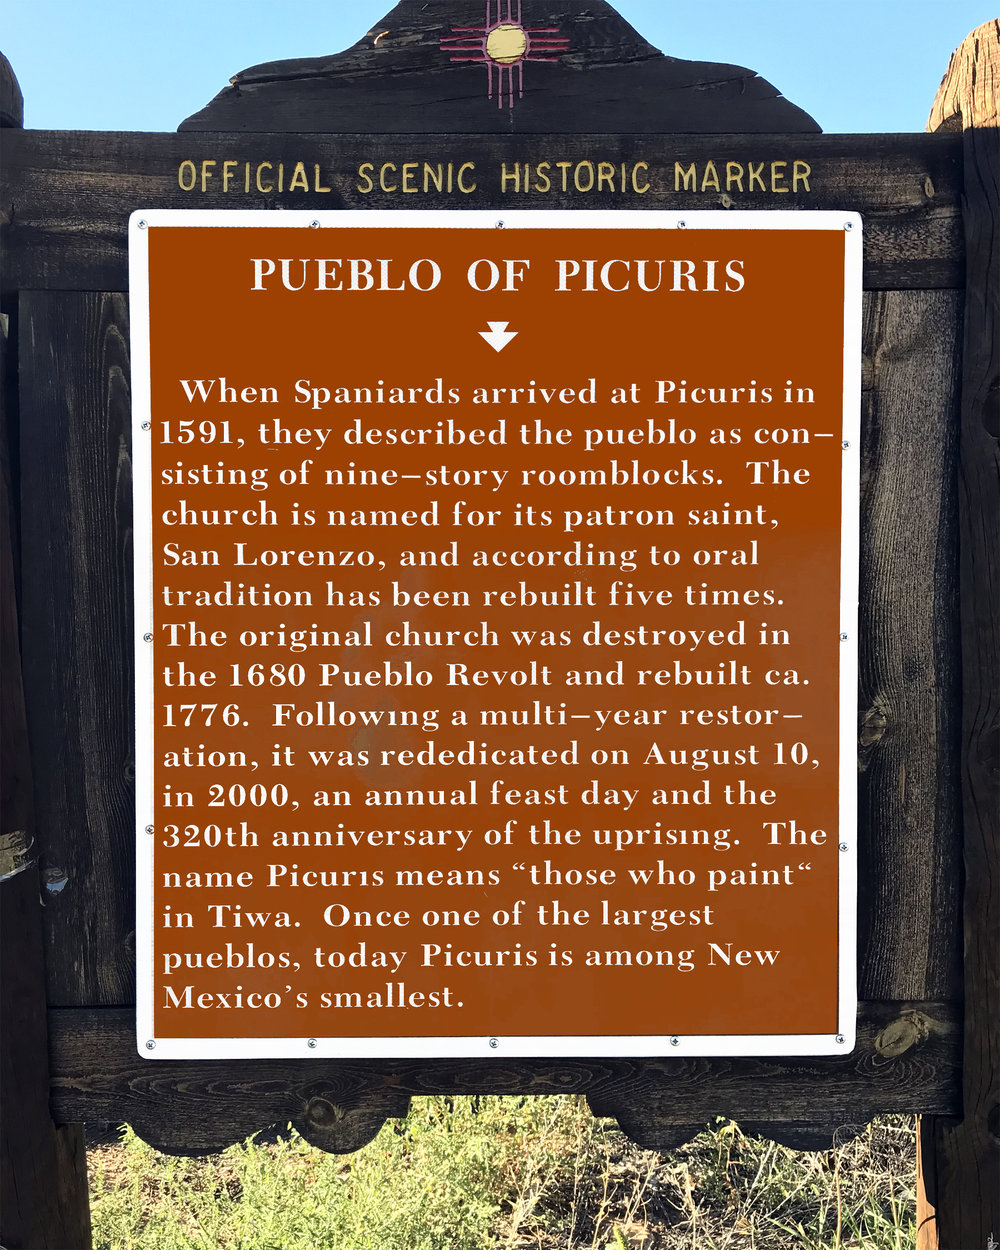 Picuris Pueblo - 201 Pueblo View Rd, Unit A, Picuris Pueblotribalsecretary@picurispueblo.org